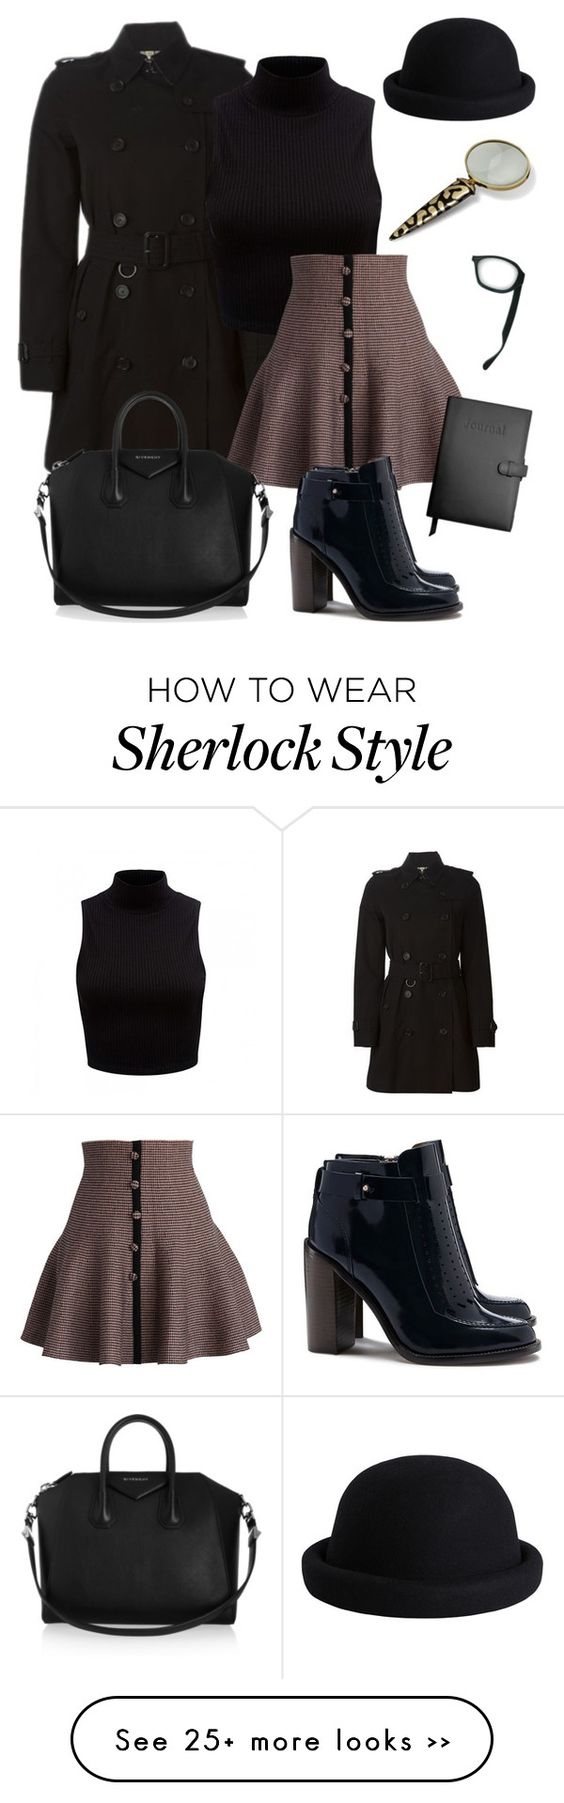 """Sherlock Homegirl"" by dejay8199 on Polyvore"